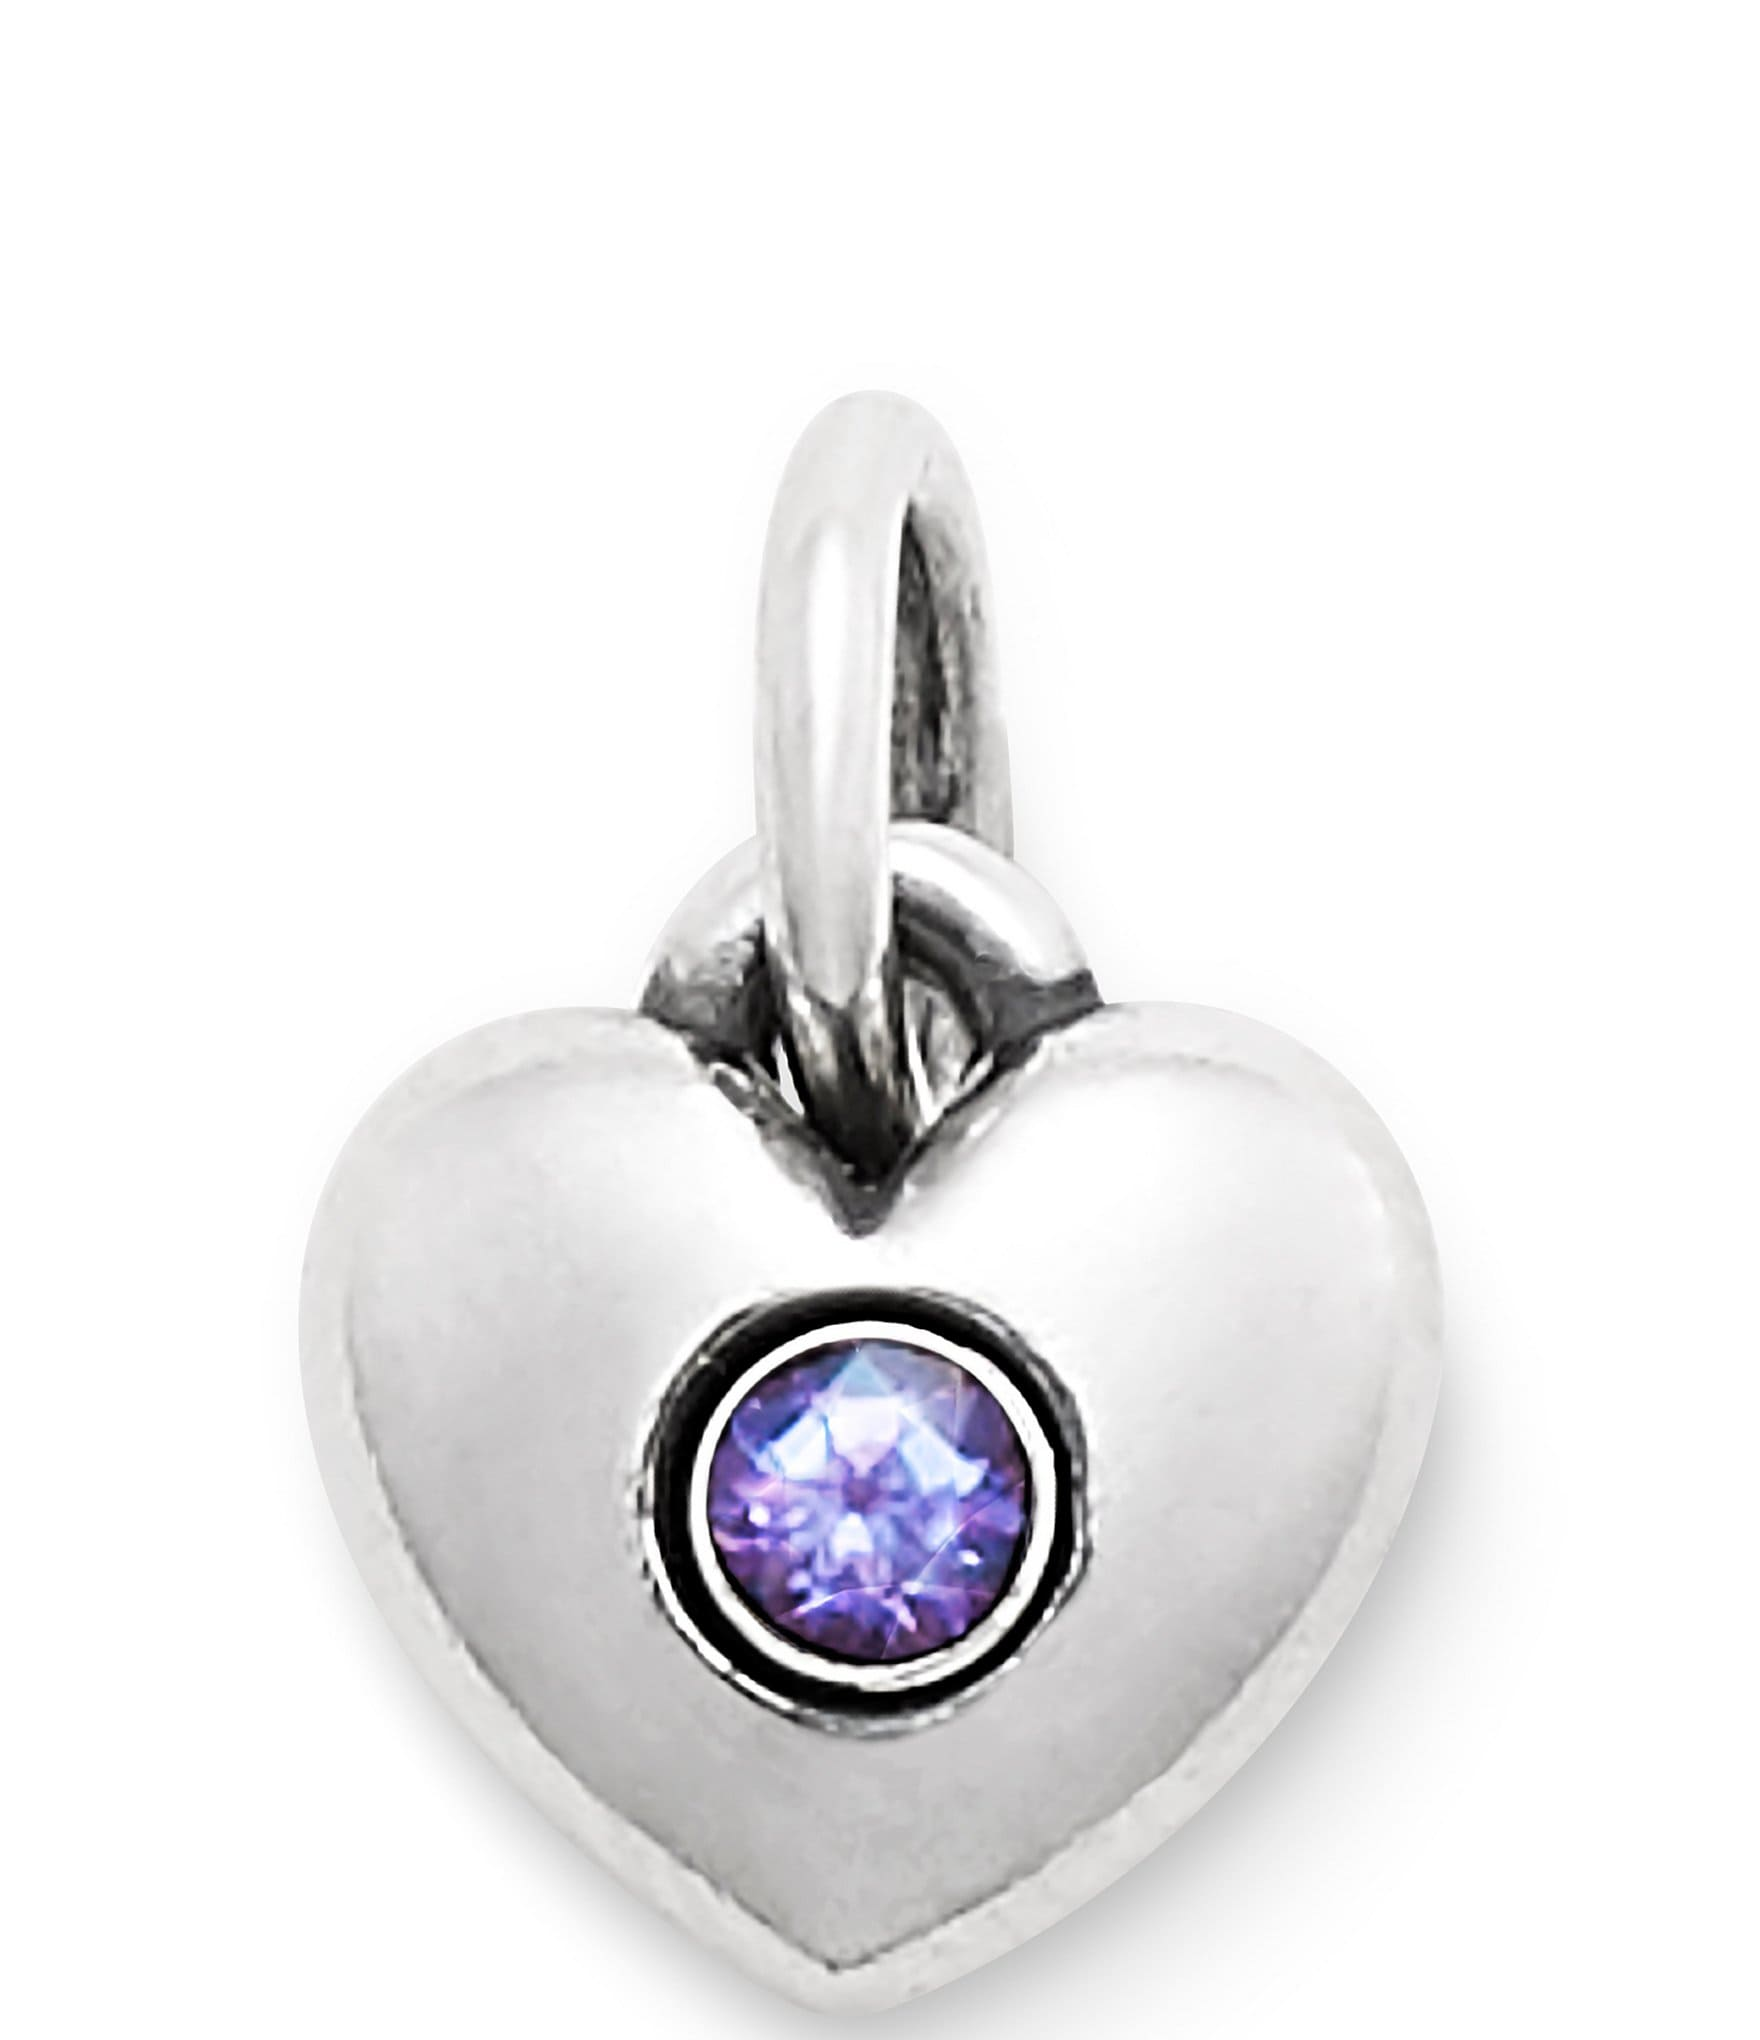 june pendant heart products necklace birthstone w silver deals of alexandrite ring